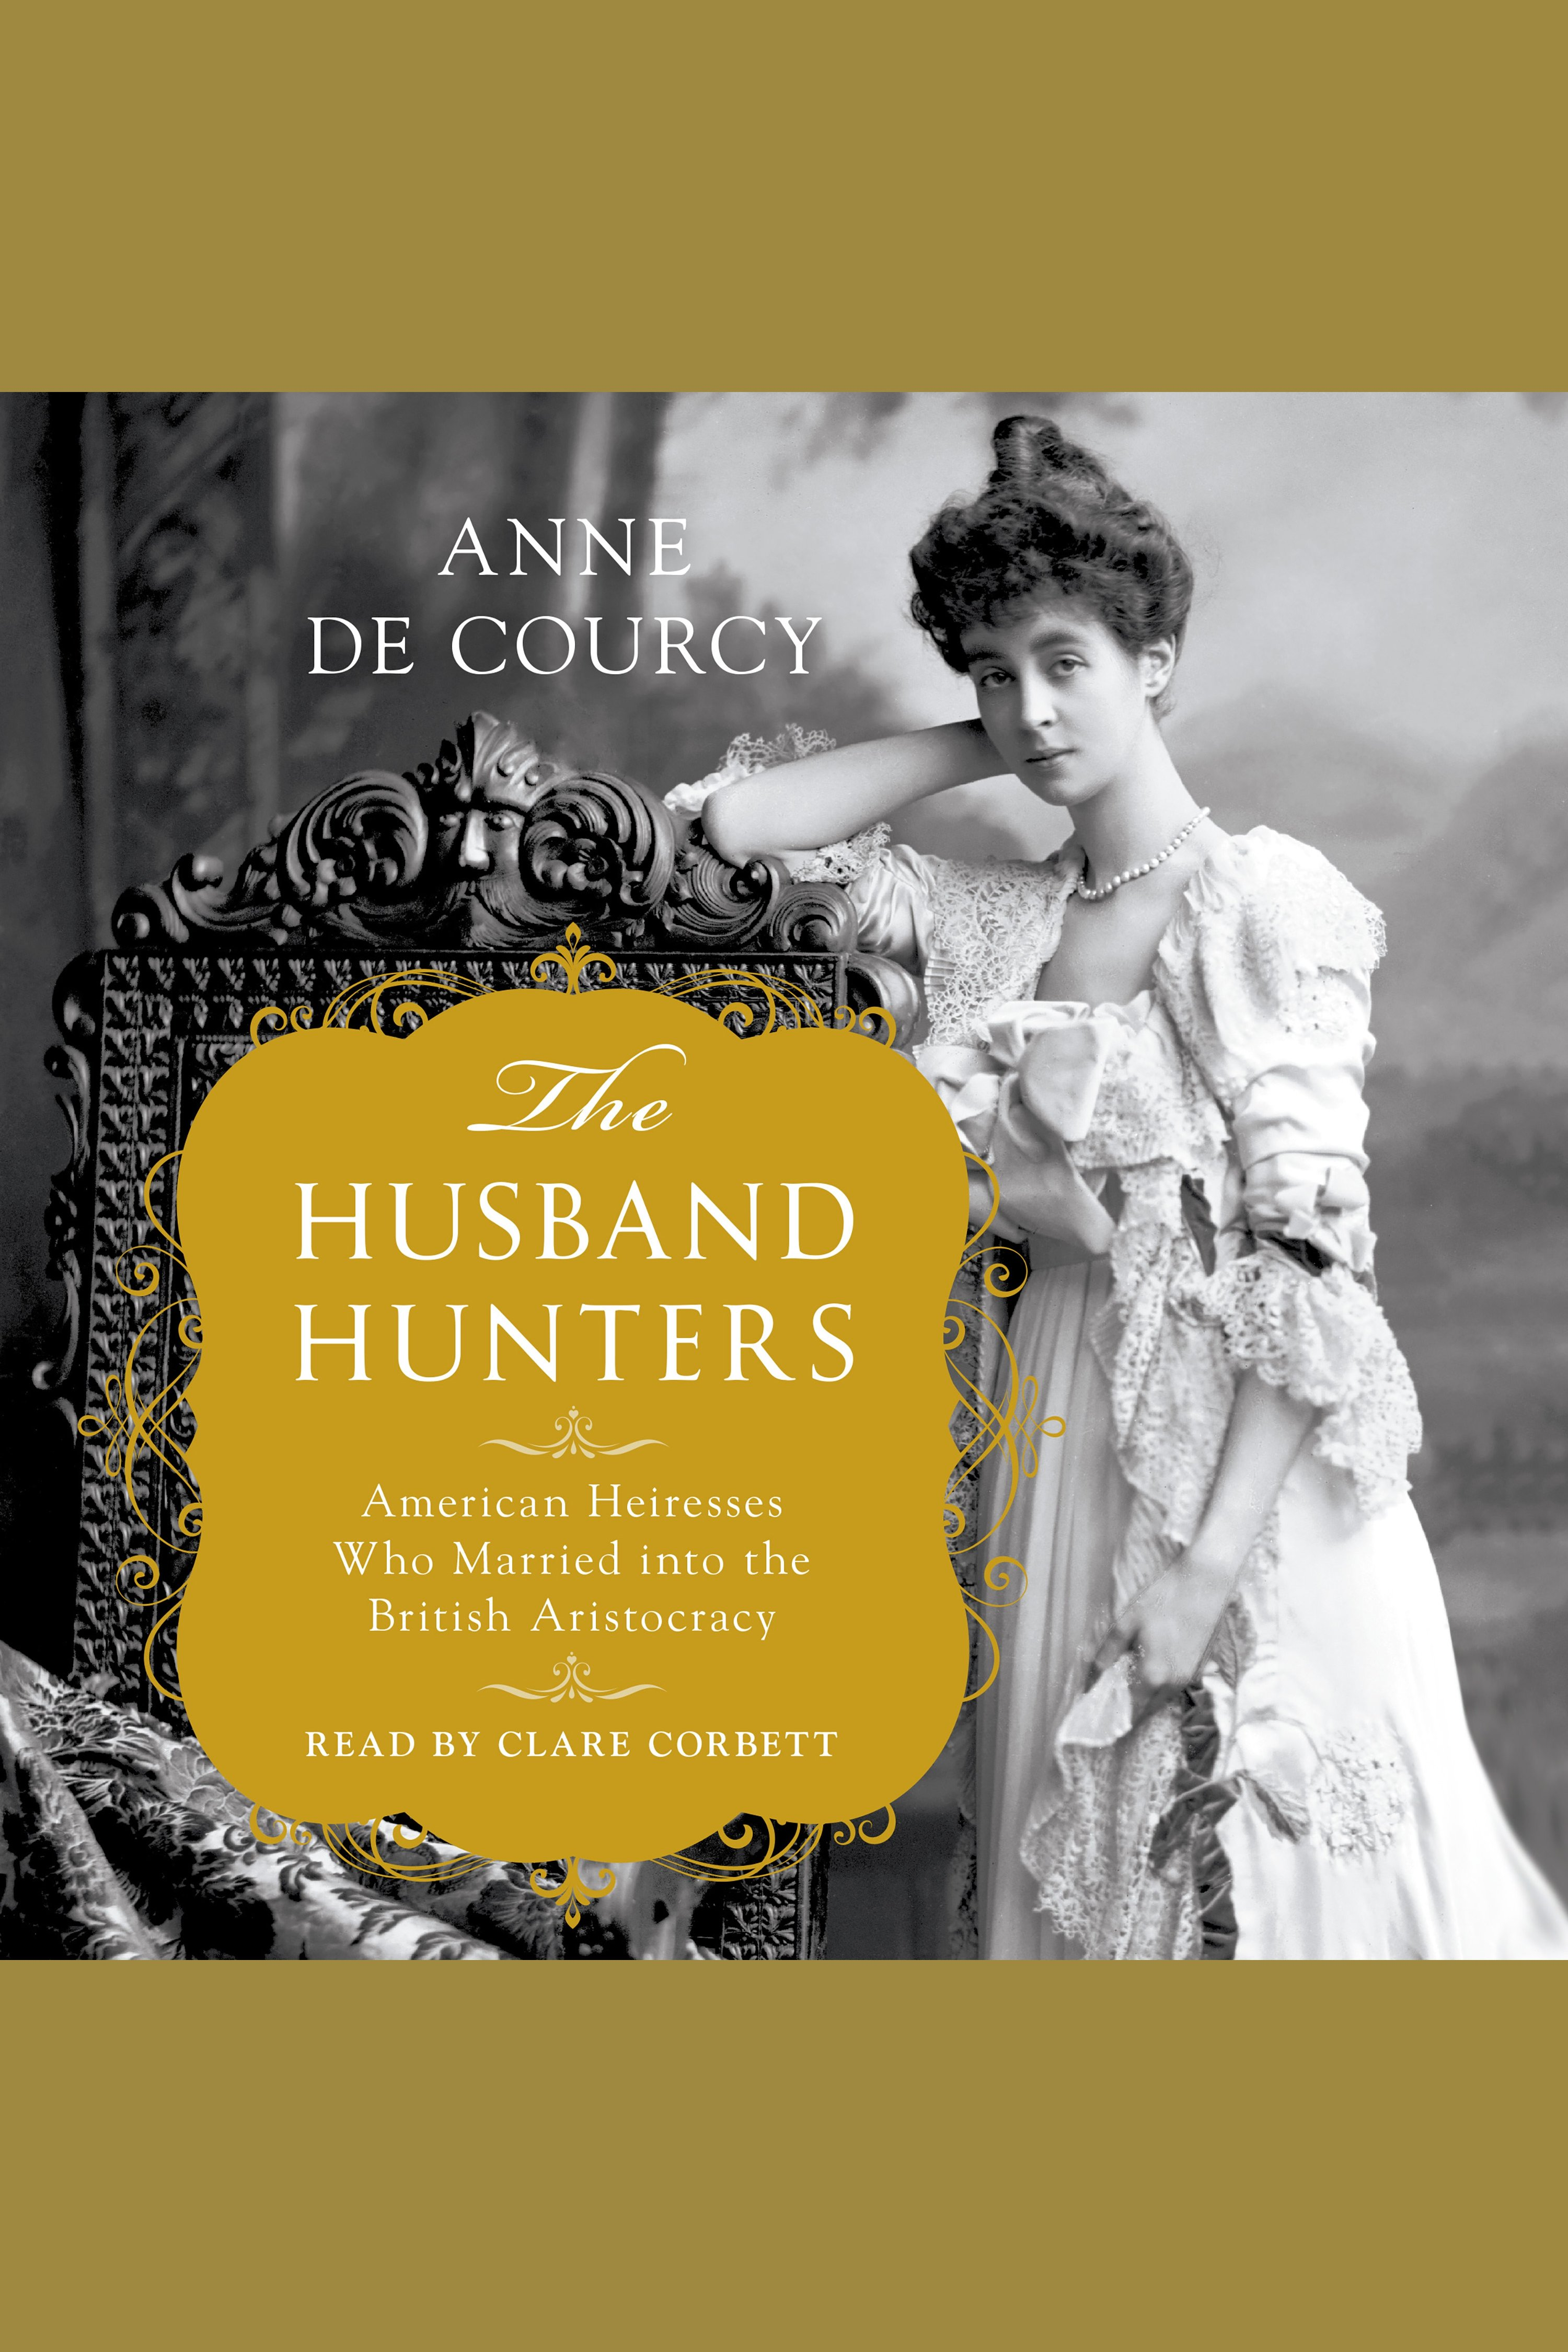 Husband Hunters, The American Heiresses Who Married into the British Aristocracy